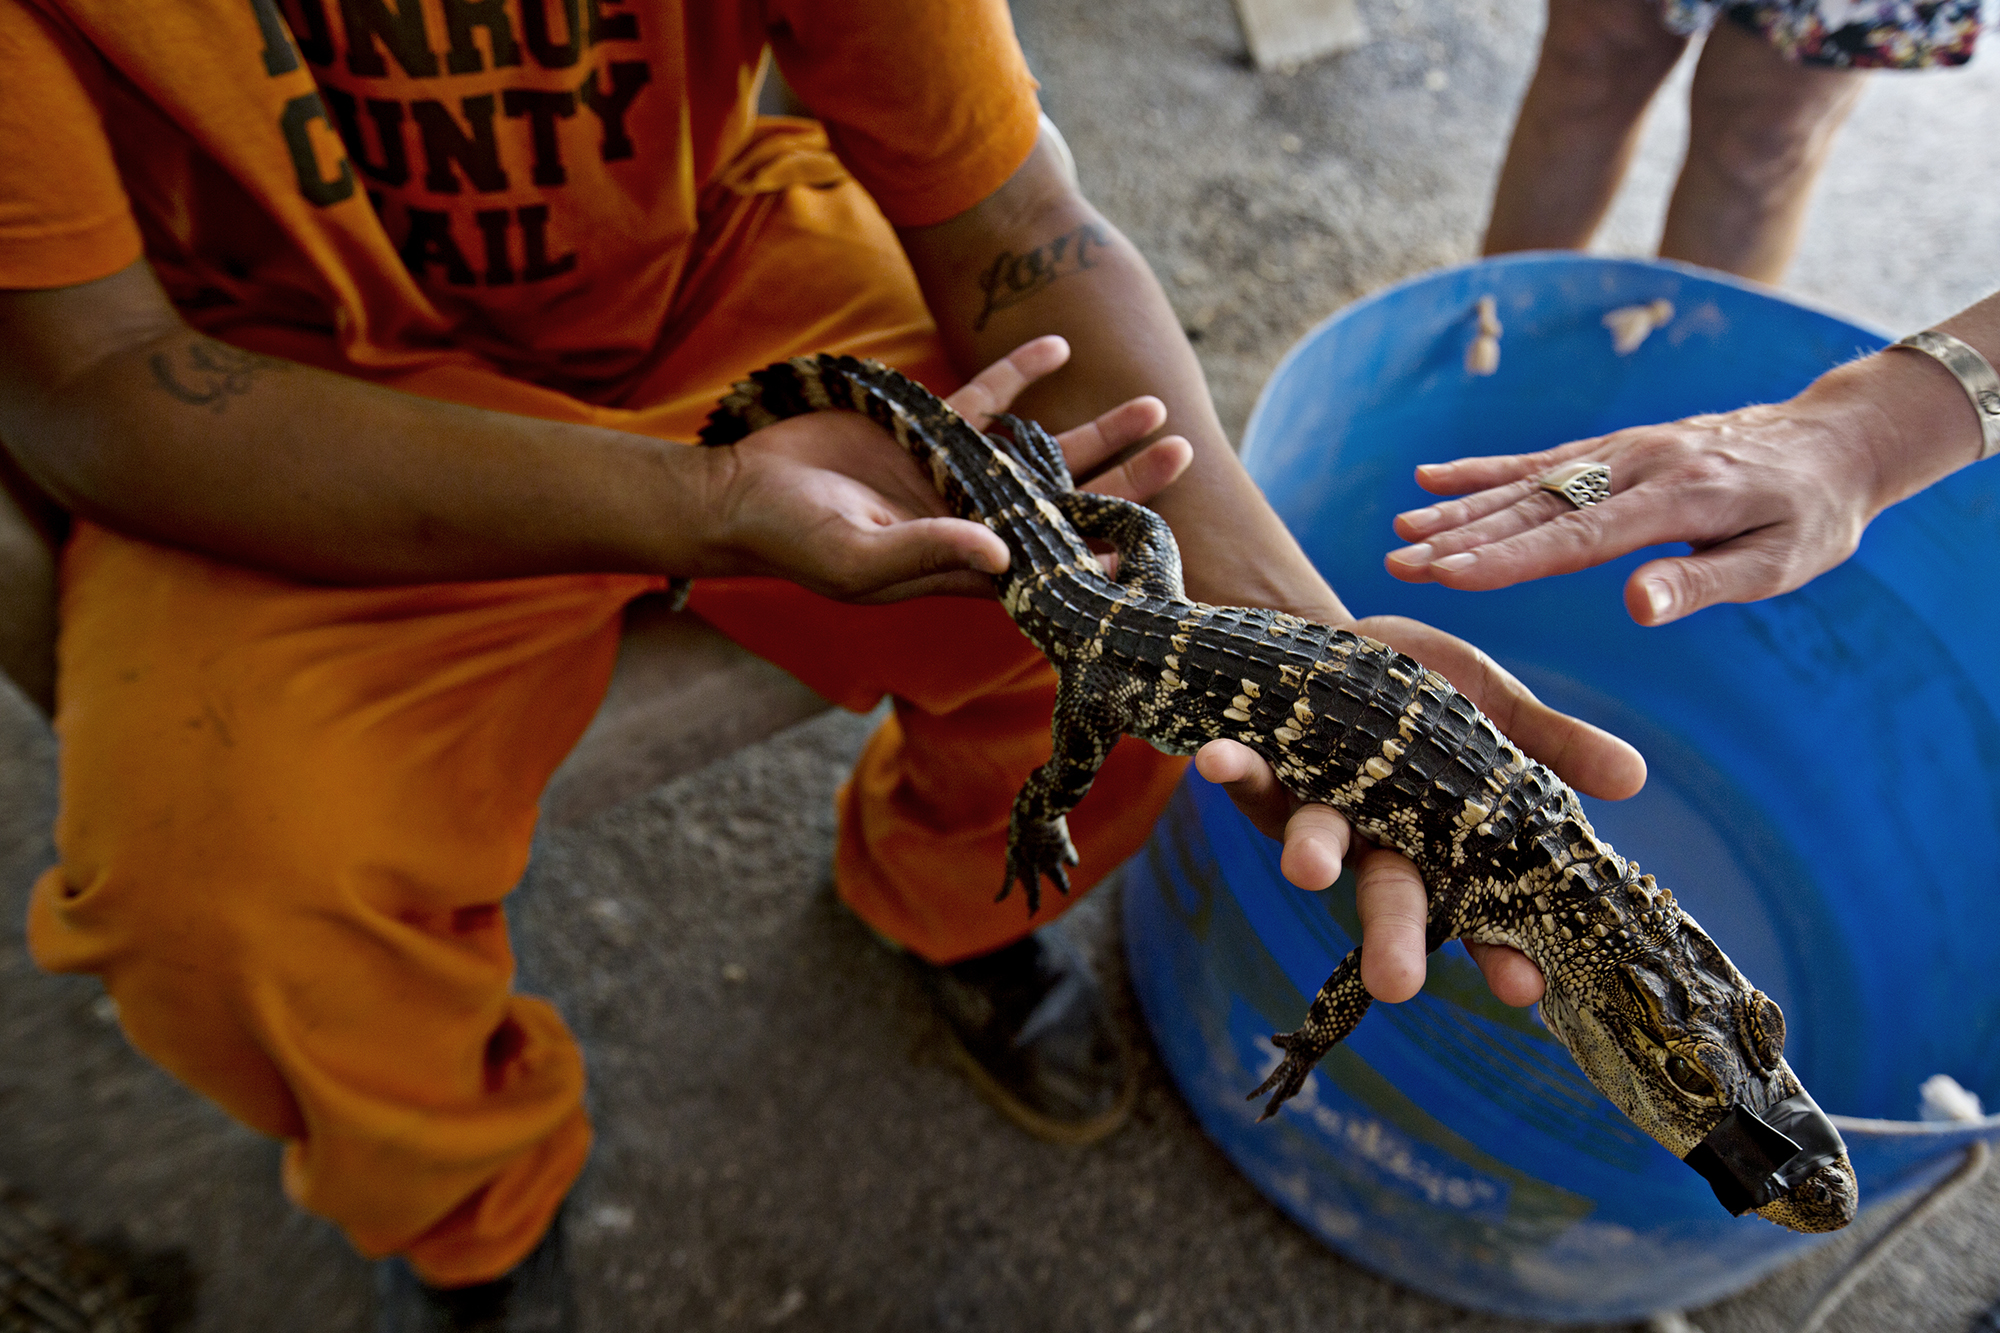 "Inmate Orlando Gonzalez shows ""Boots"" the alligator to visitors during an open house at the Monroe County Sheriff's Office Farm on Stock Island, Florida.  ""Boots"" came to the farm after ingesting the silicone lining in her aquarium. Her owners didn't want to pay for the veterinary care to get her back to health so they signed her over to Dr. Doug Mader, who then donated her to the farm.   Photo by Kim Raff"